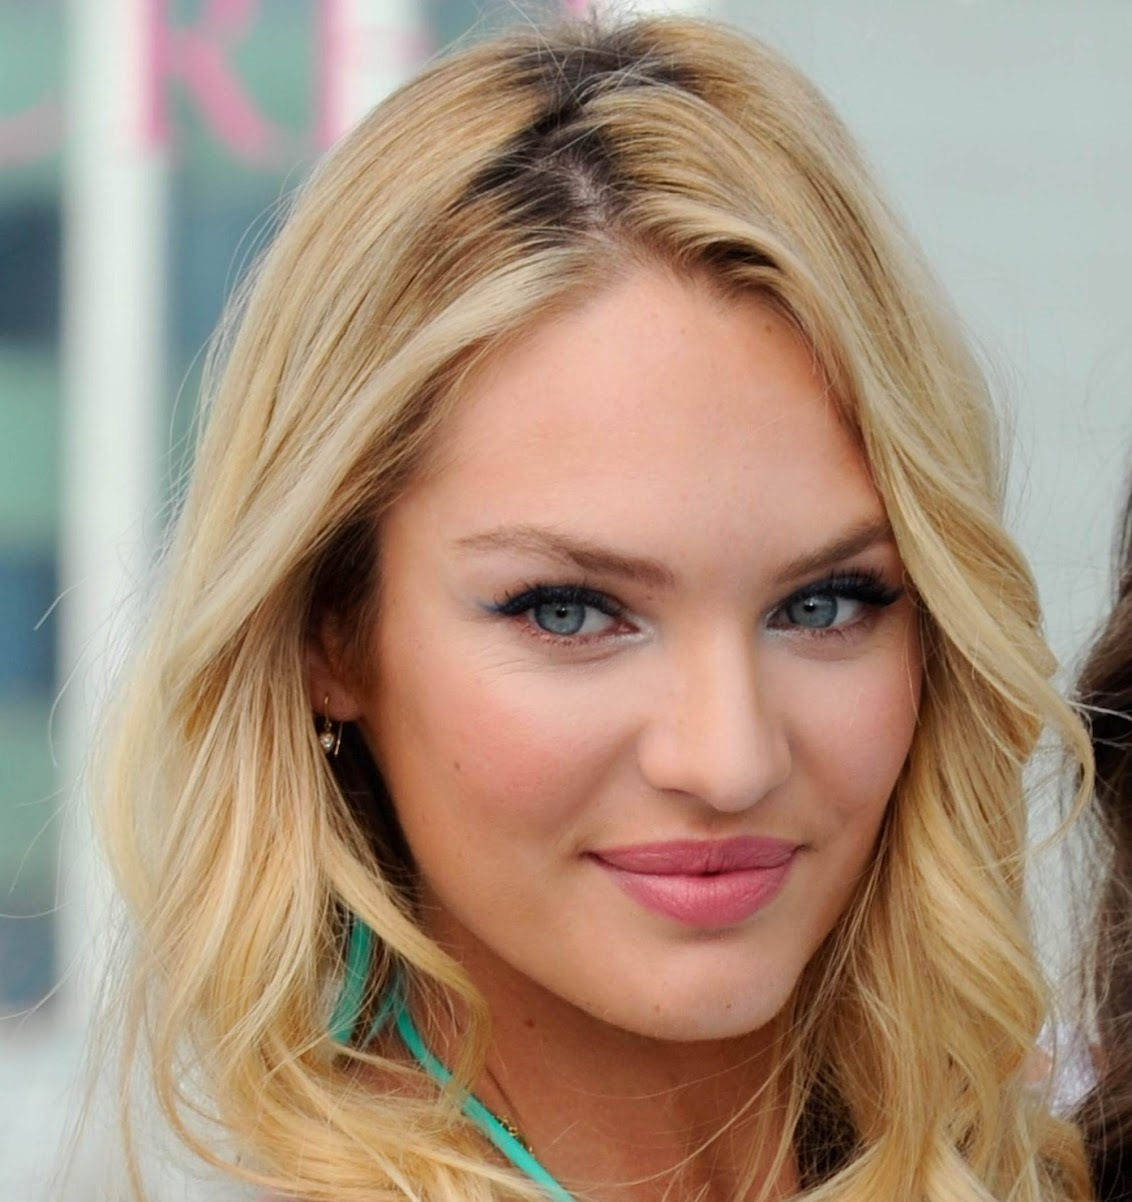 candice swanepoel celebrity faces - photo #15